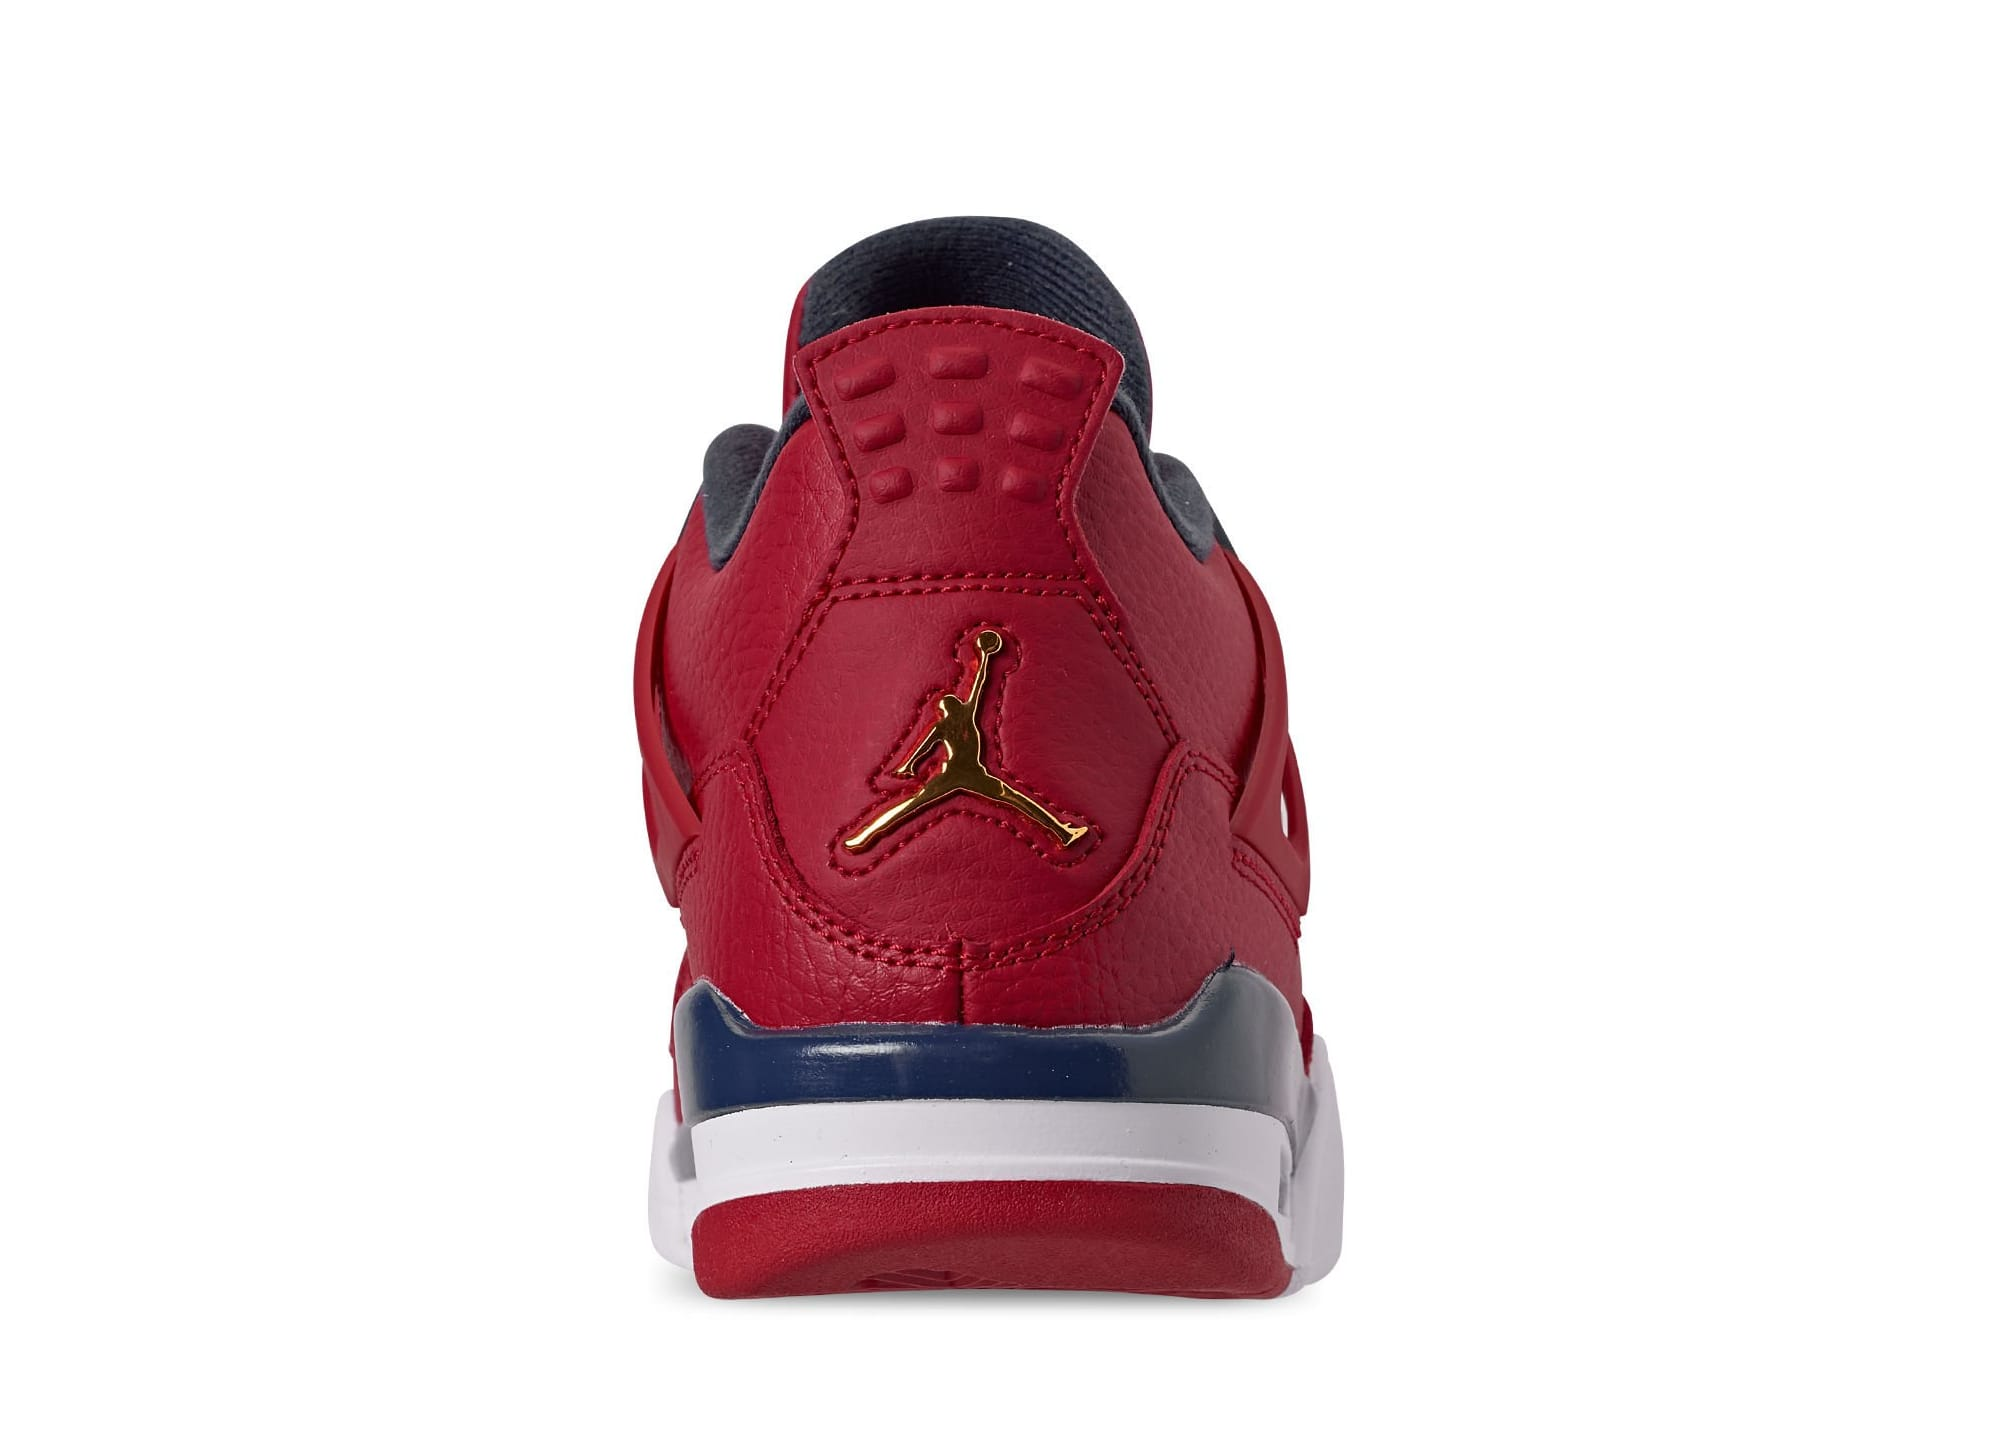 buy popular 18b7d 5bba5 Air Jordan 4 Retro SE 'Fiba' Release Date July 2019 CI1184 ...